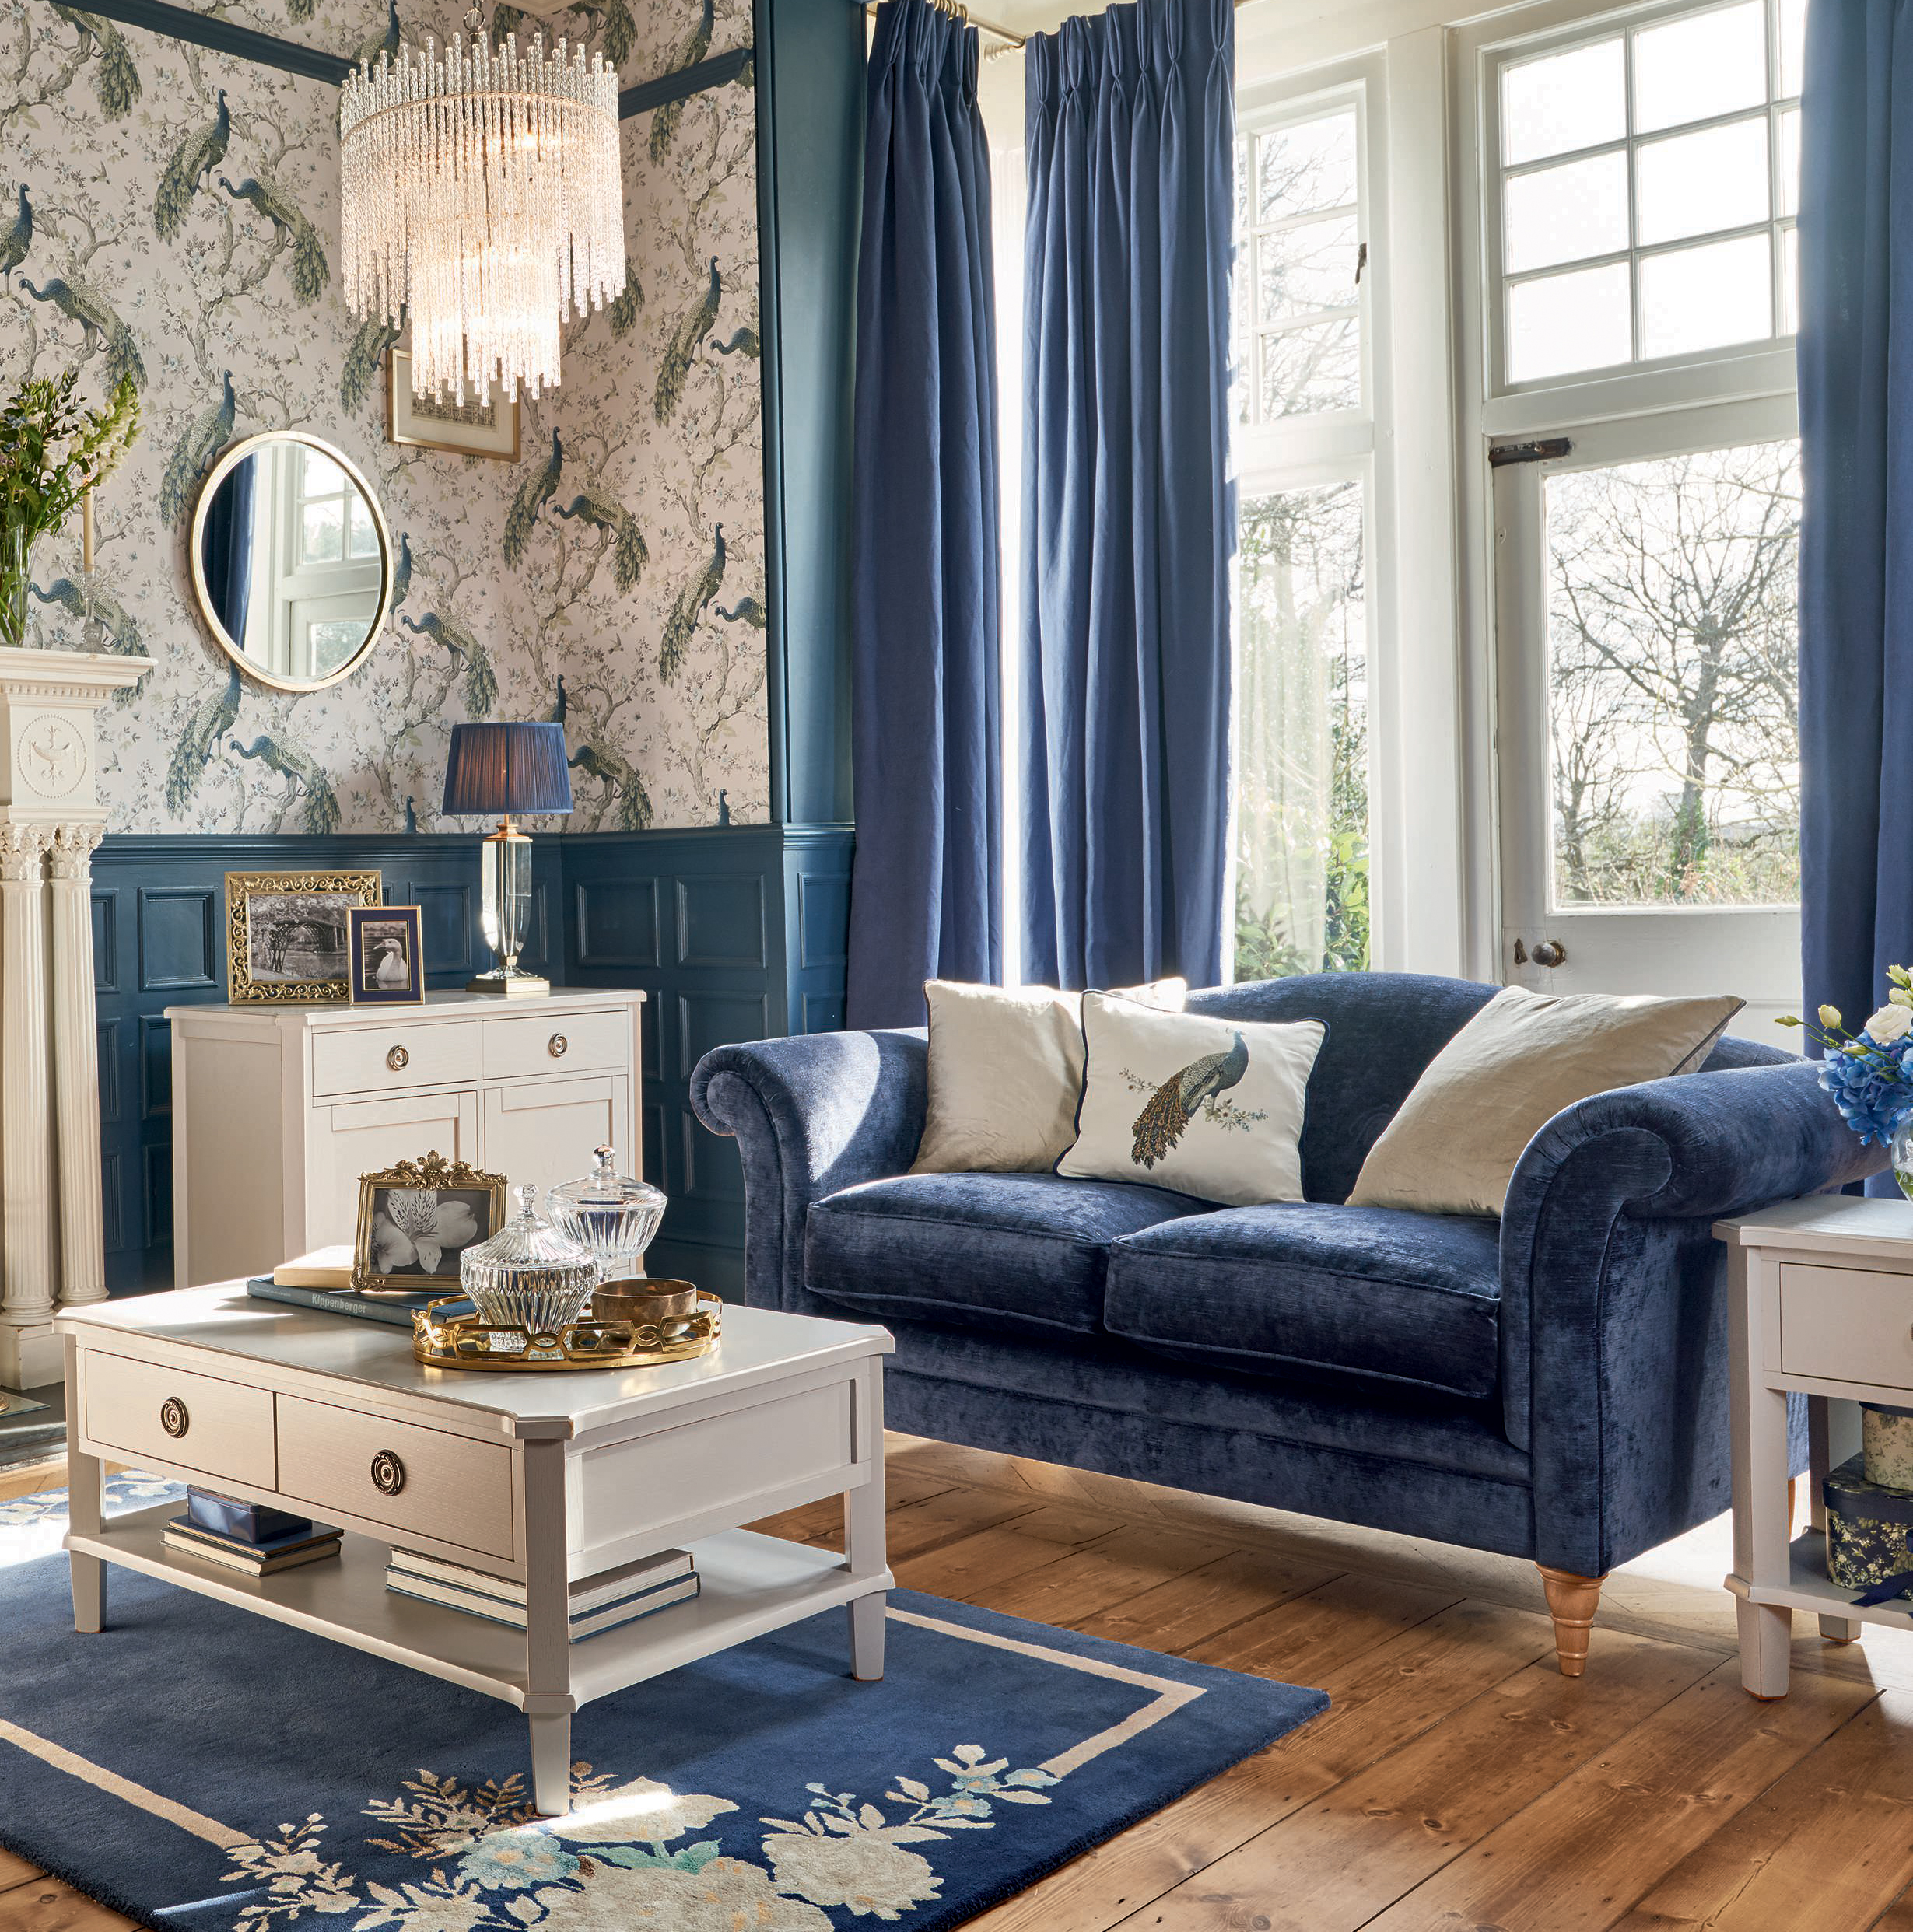 Something Blue, Something Borrowed: How to use midnight blue in the home